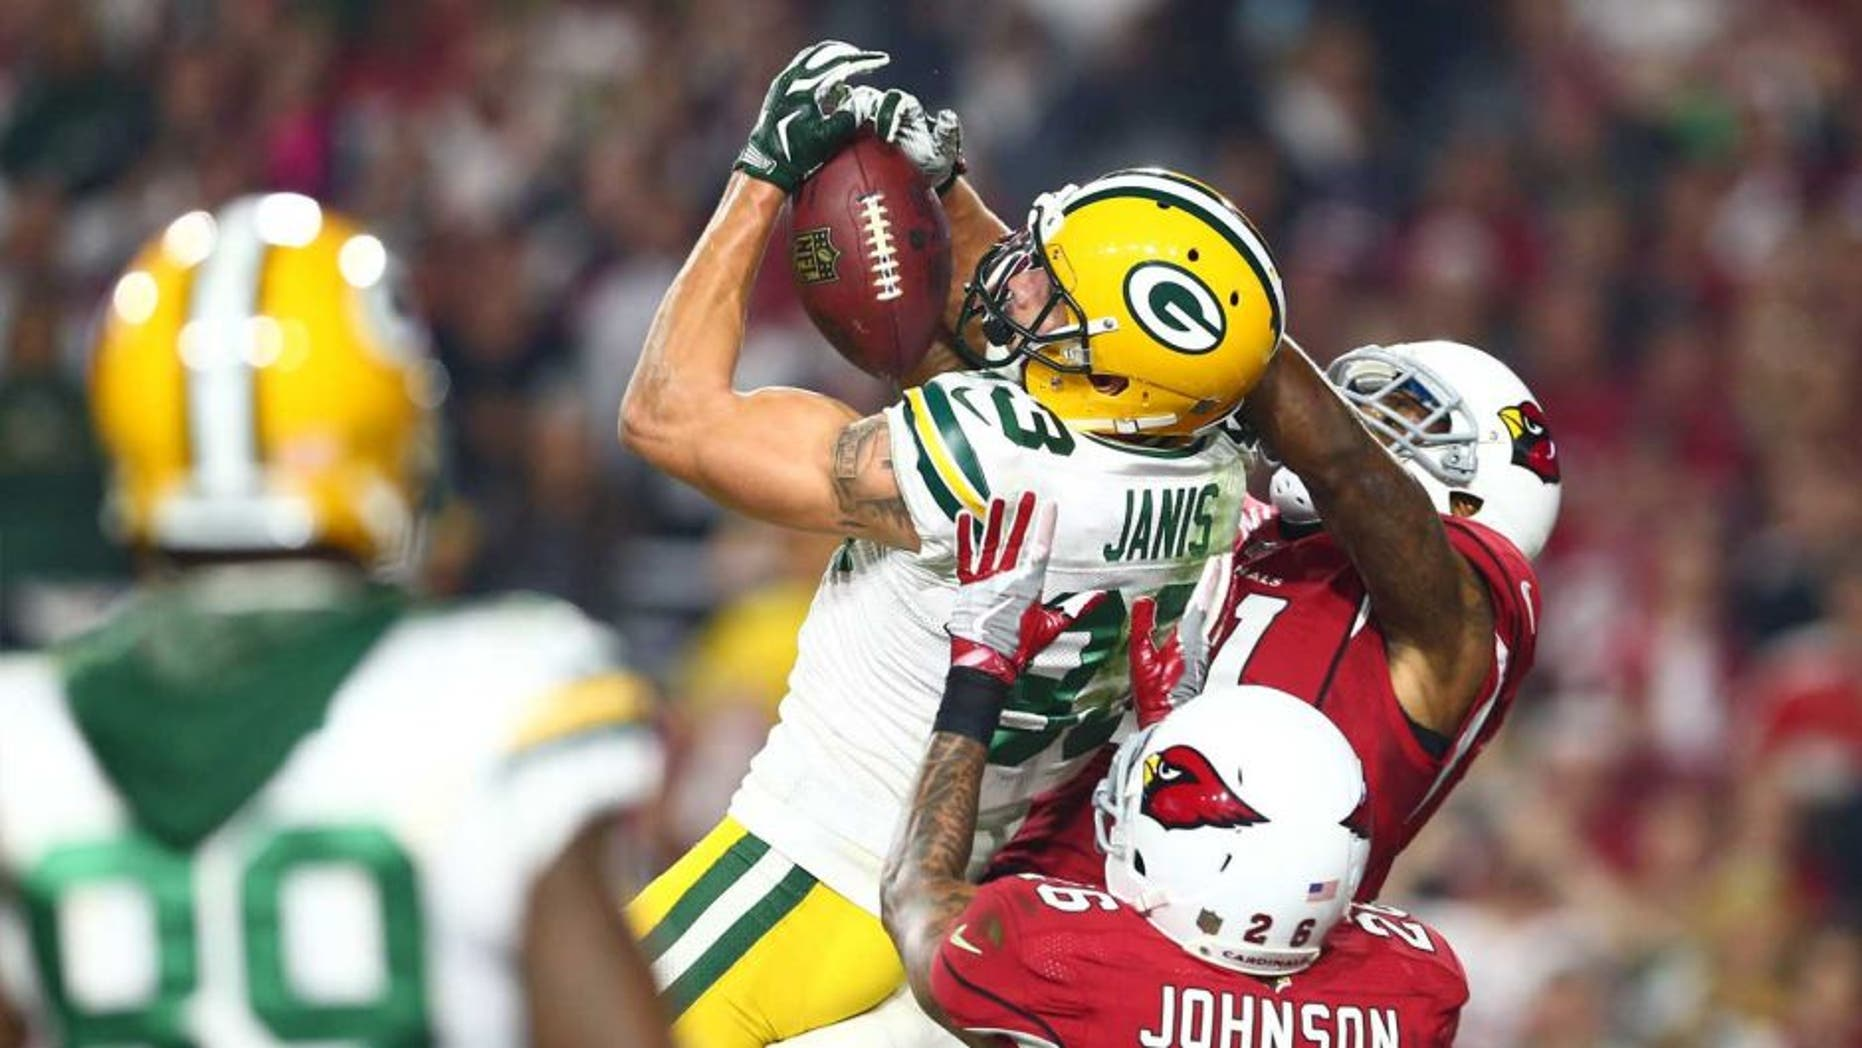 Saturday, Jan. 16: Green Bay Packers wide receiver Jeff Janis catches a Hail Mary pass for a touchdown against the Arizona Cardinals during the fourth quarter in a NFC Divisional Round playoff game at University of Phoenix Stadium in Glendale, Ariz.